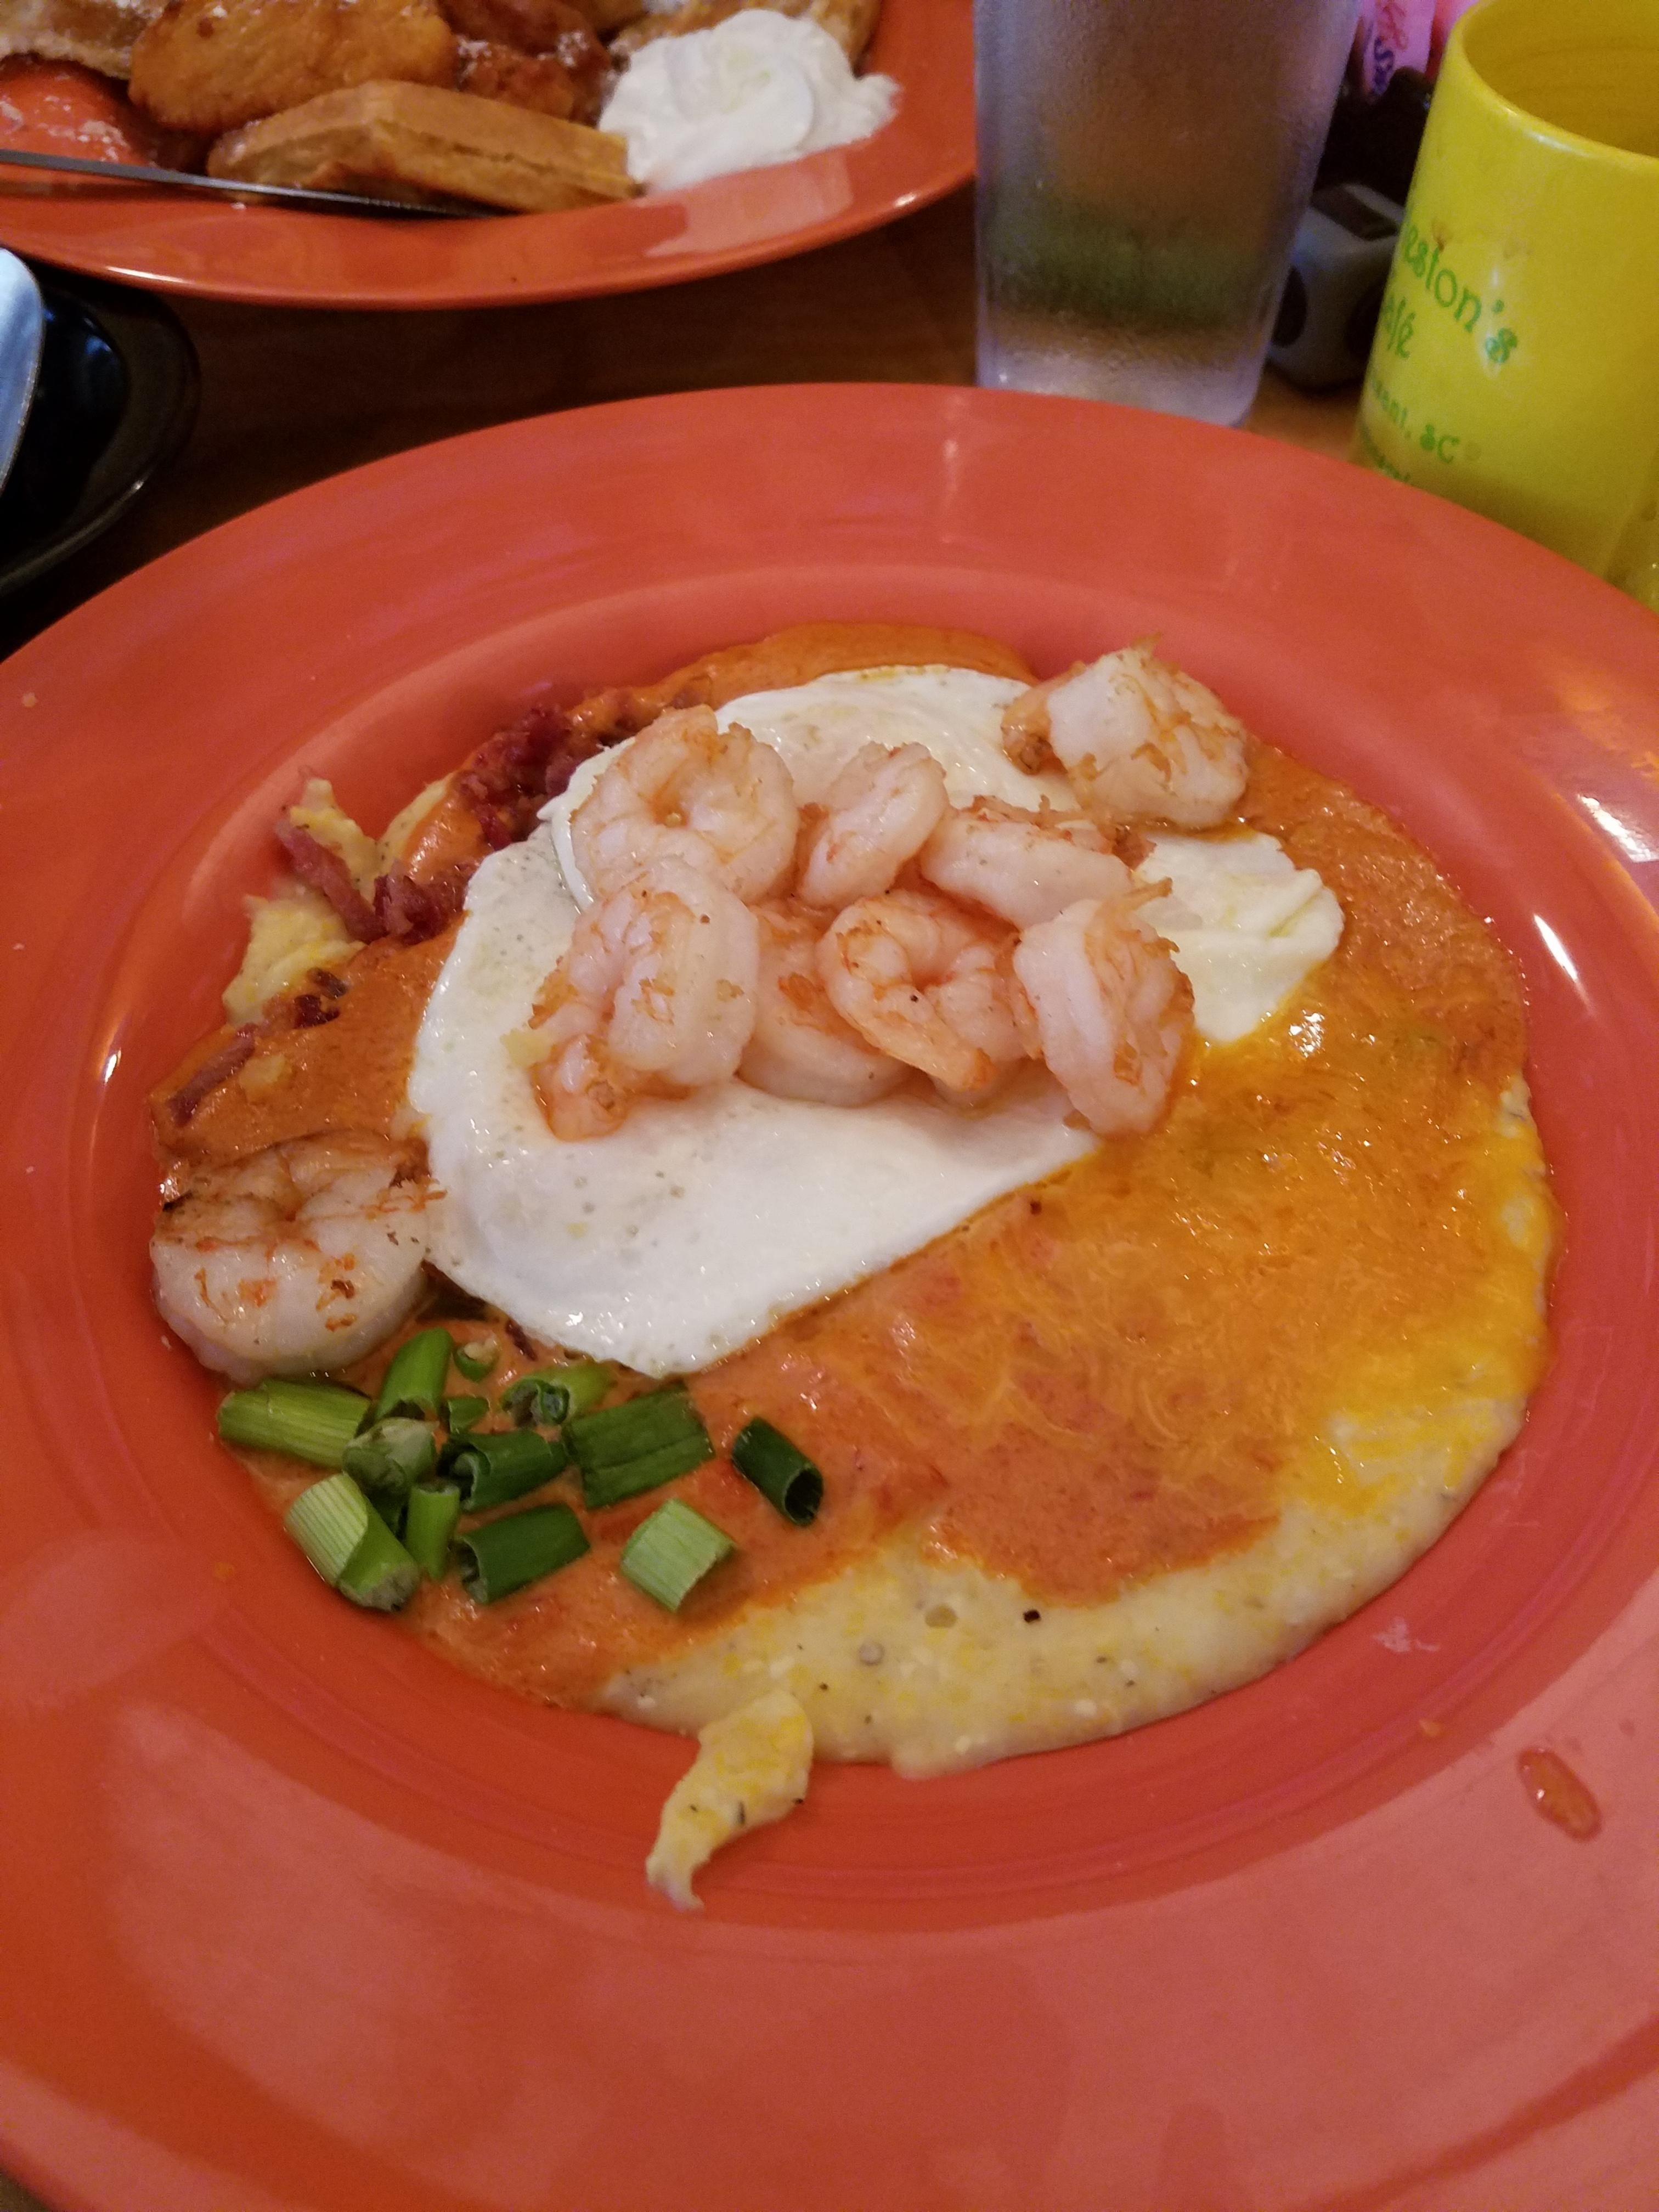 [I Ate] Shrimp and Grits